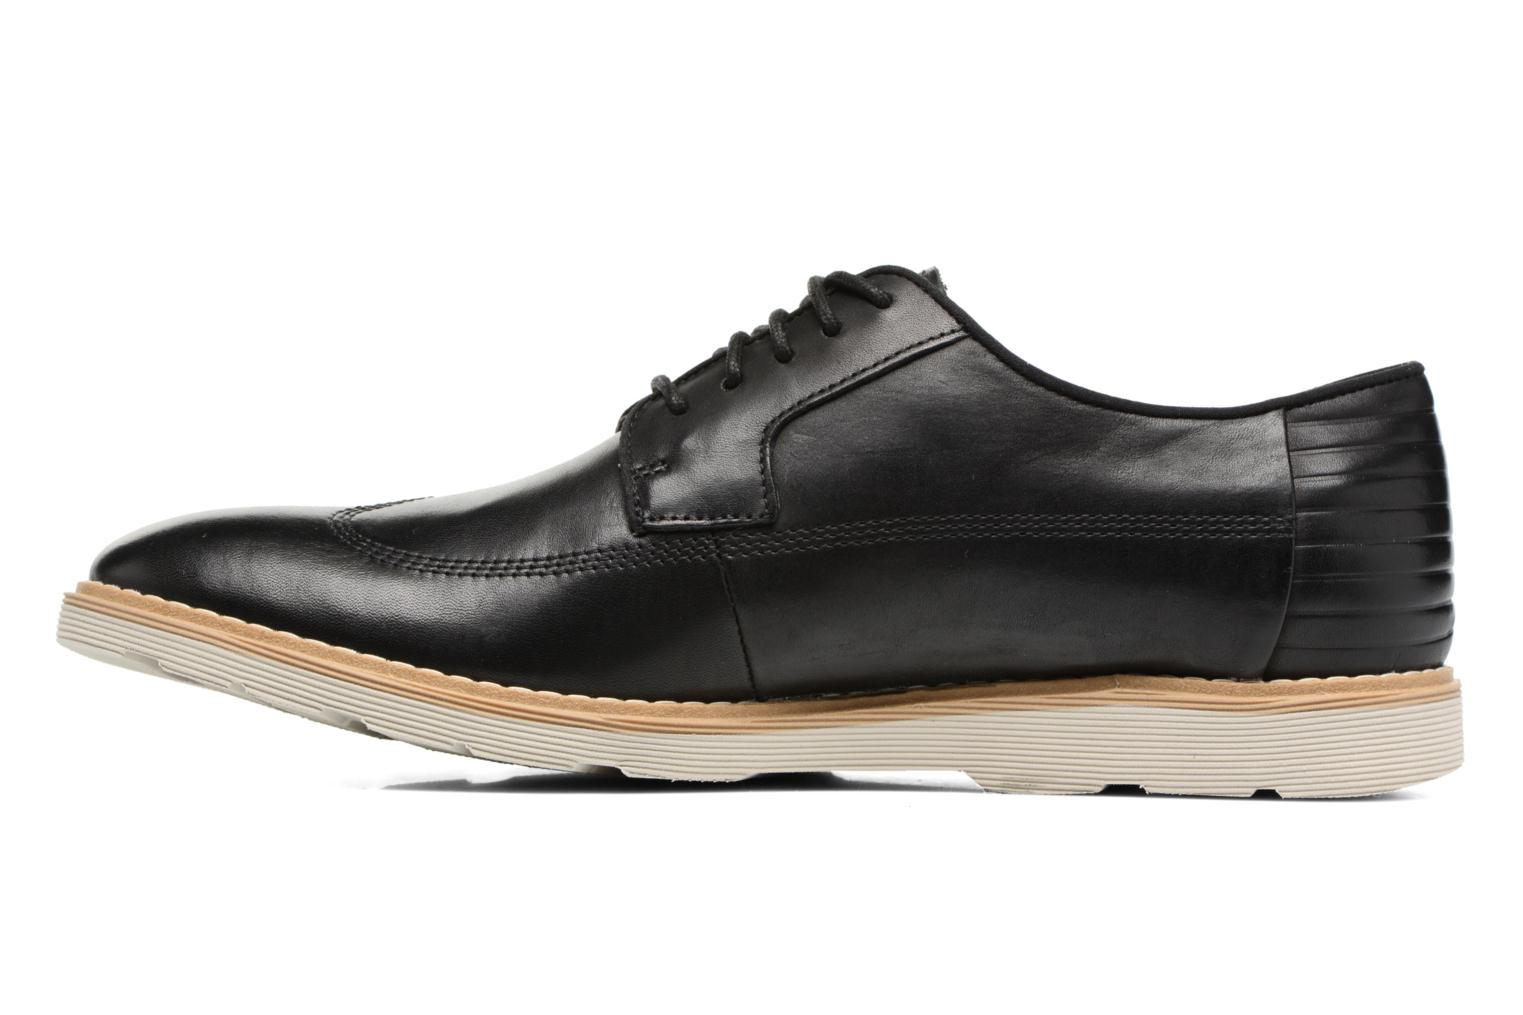 Chaussures à lacets Clarks Gambeson Style Noir vue face